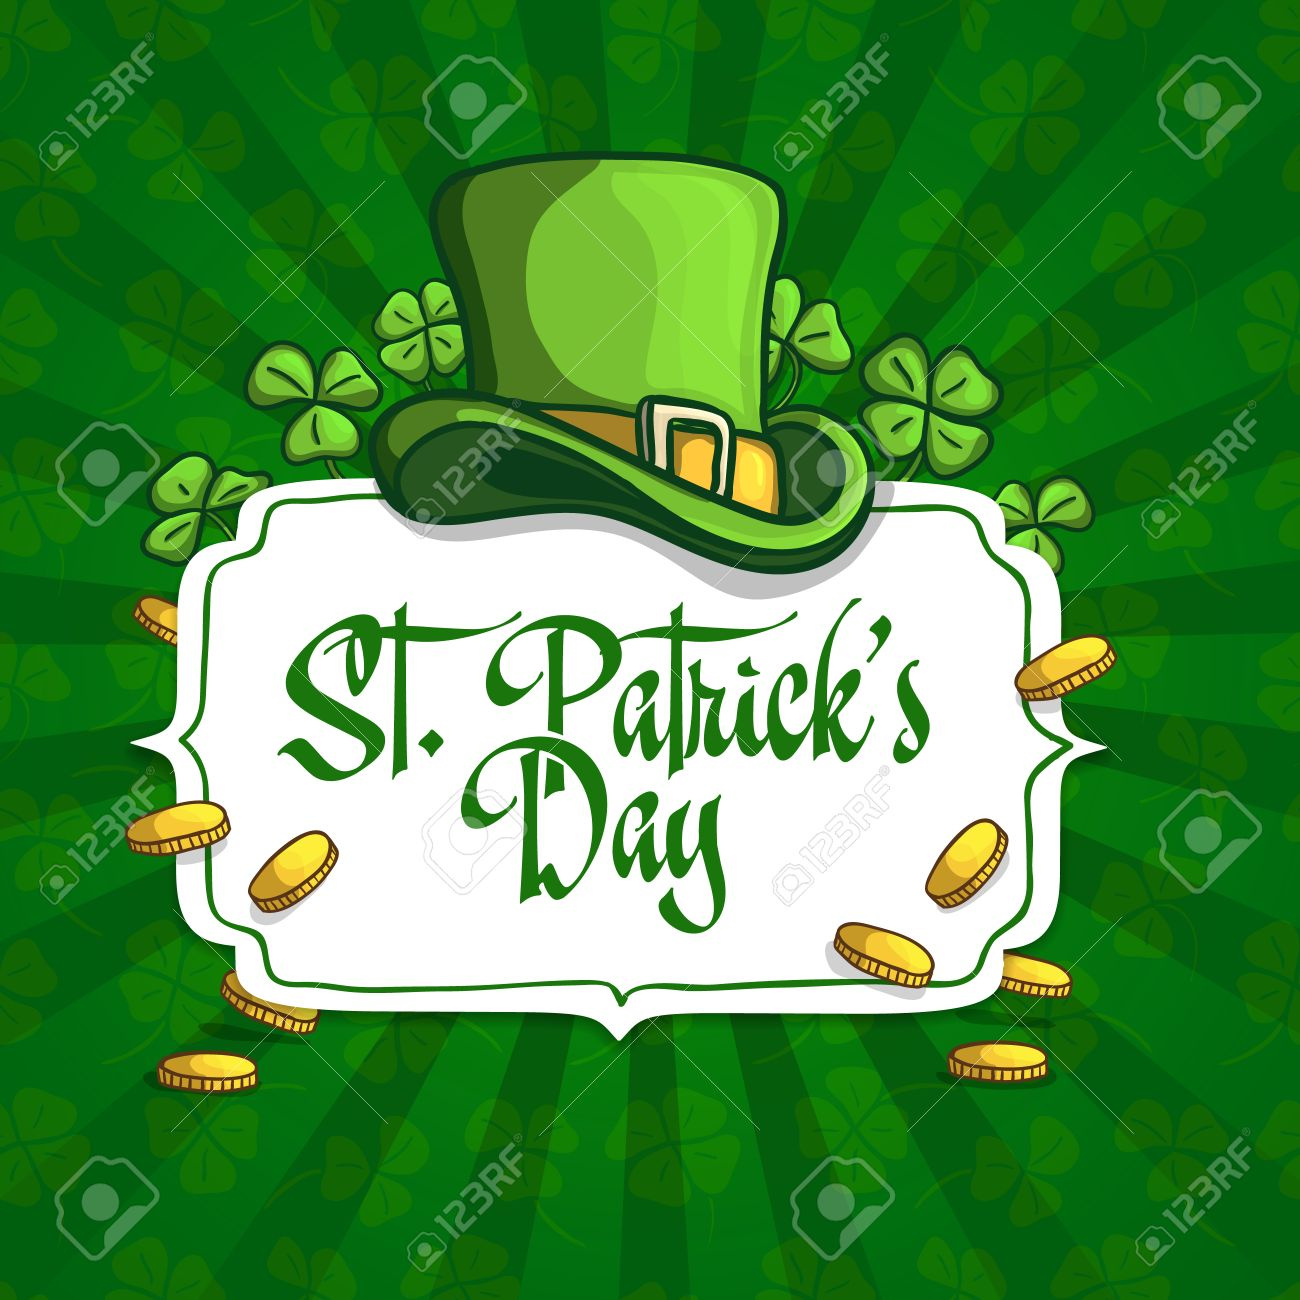 template design banners logos signs posters for st patrick s